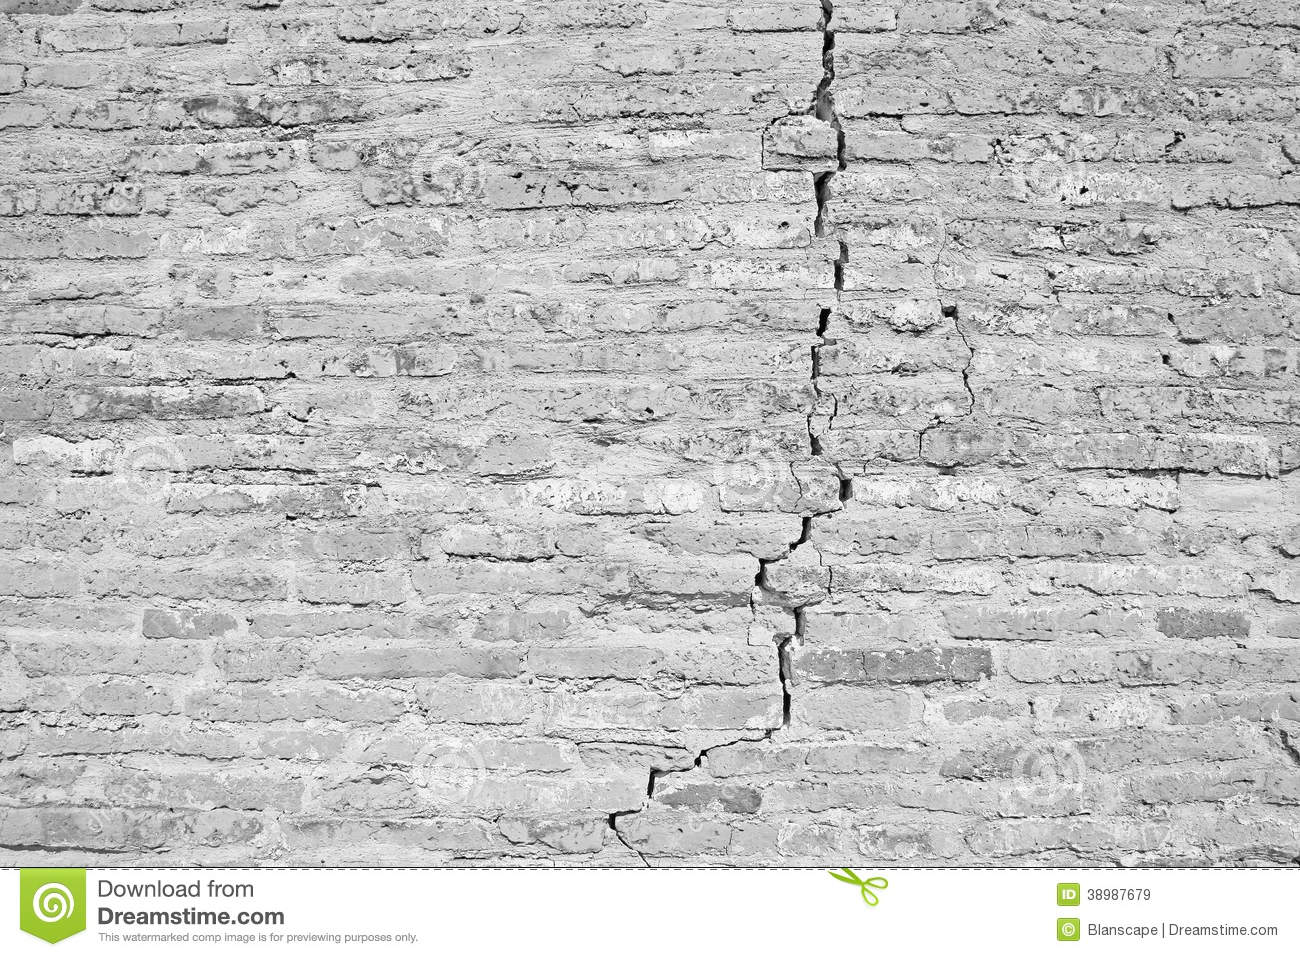 Cracked brick wall black and white